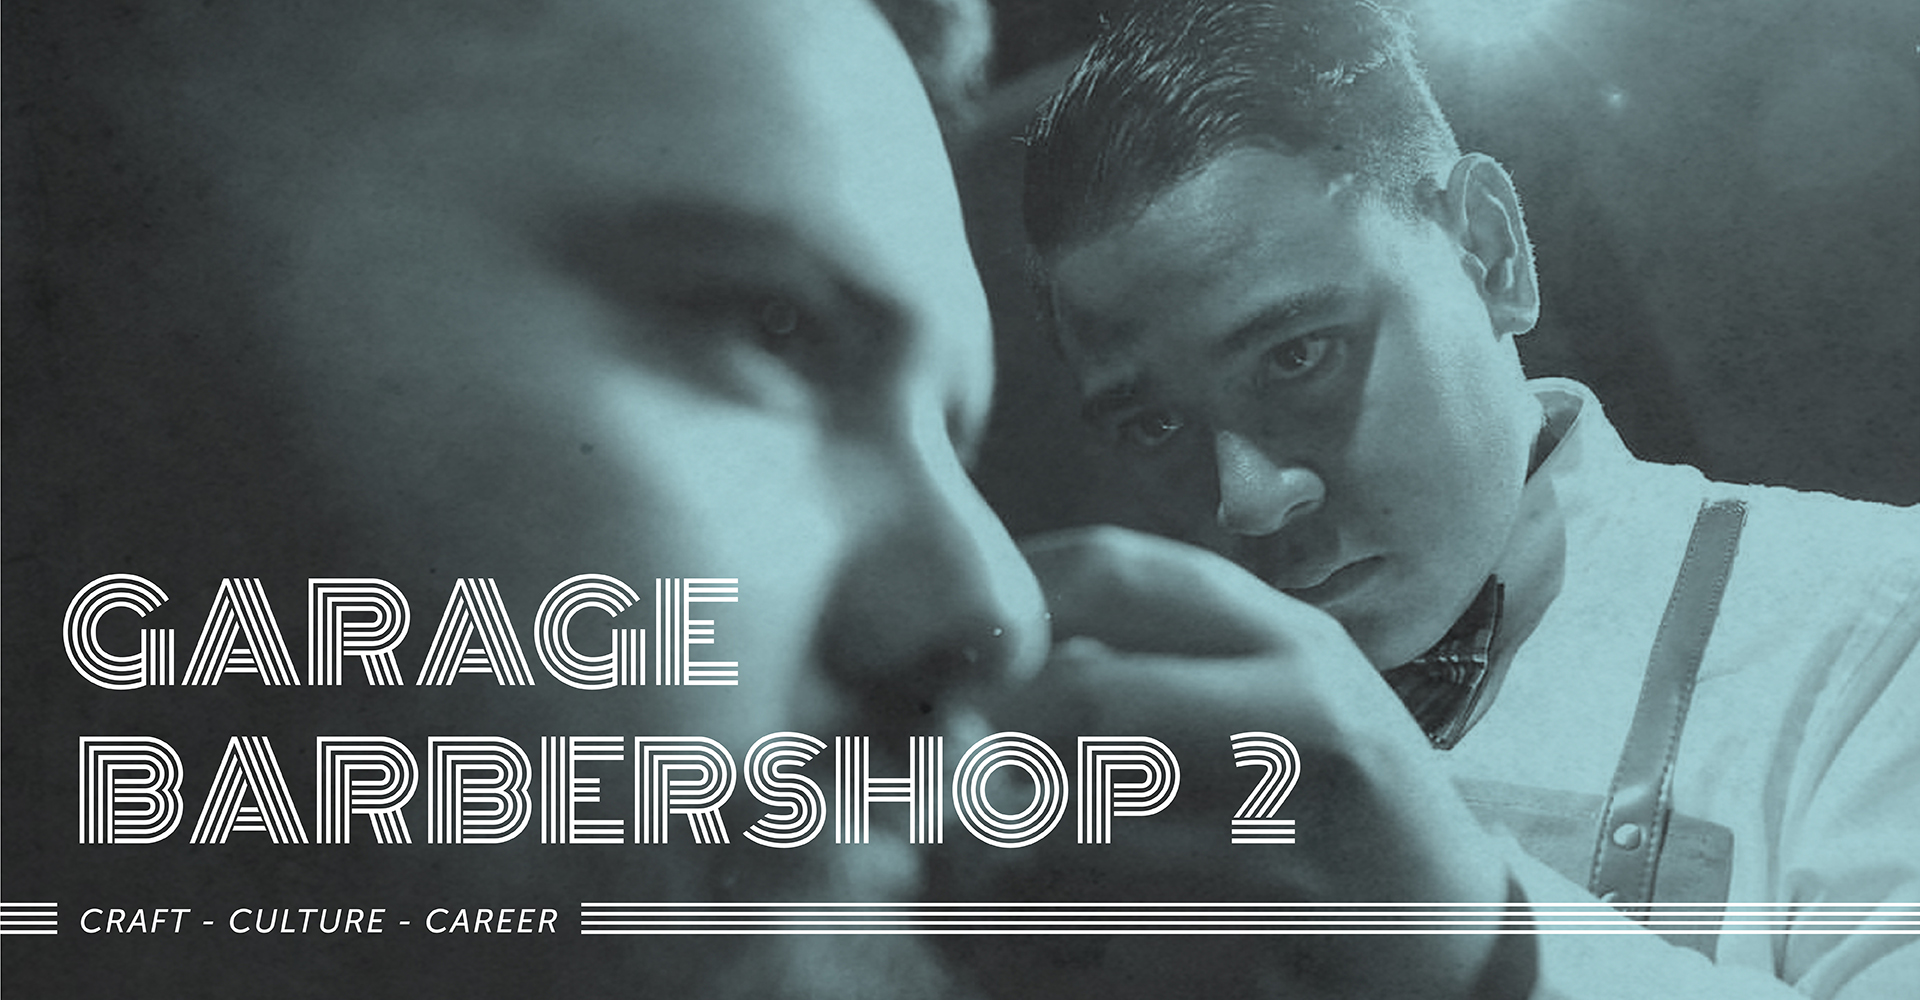 Garage Barbershop 2 - Information & Cultural Exchange